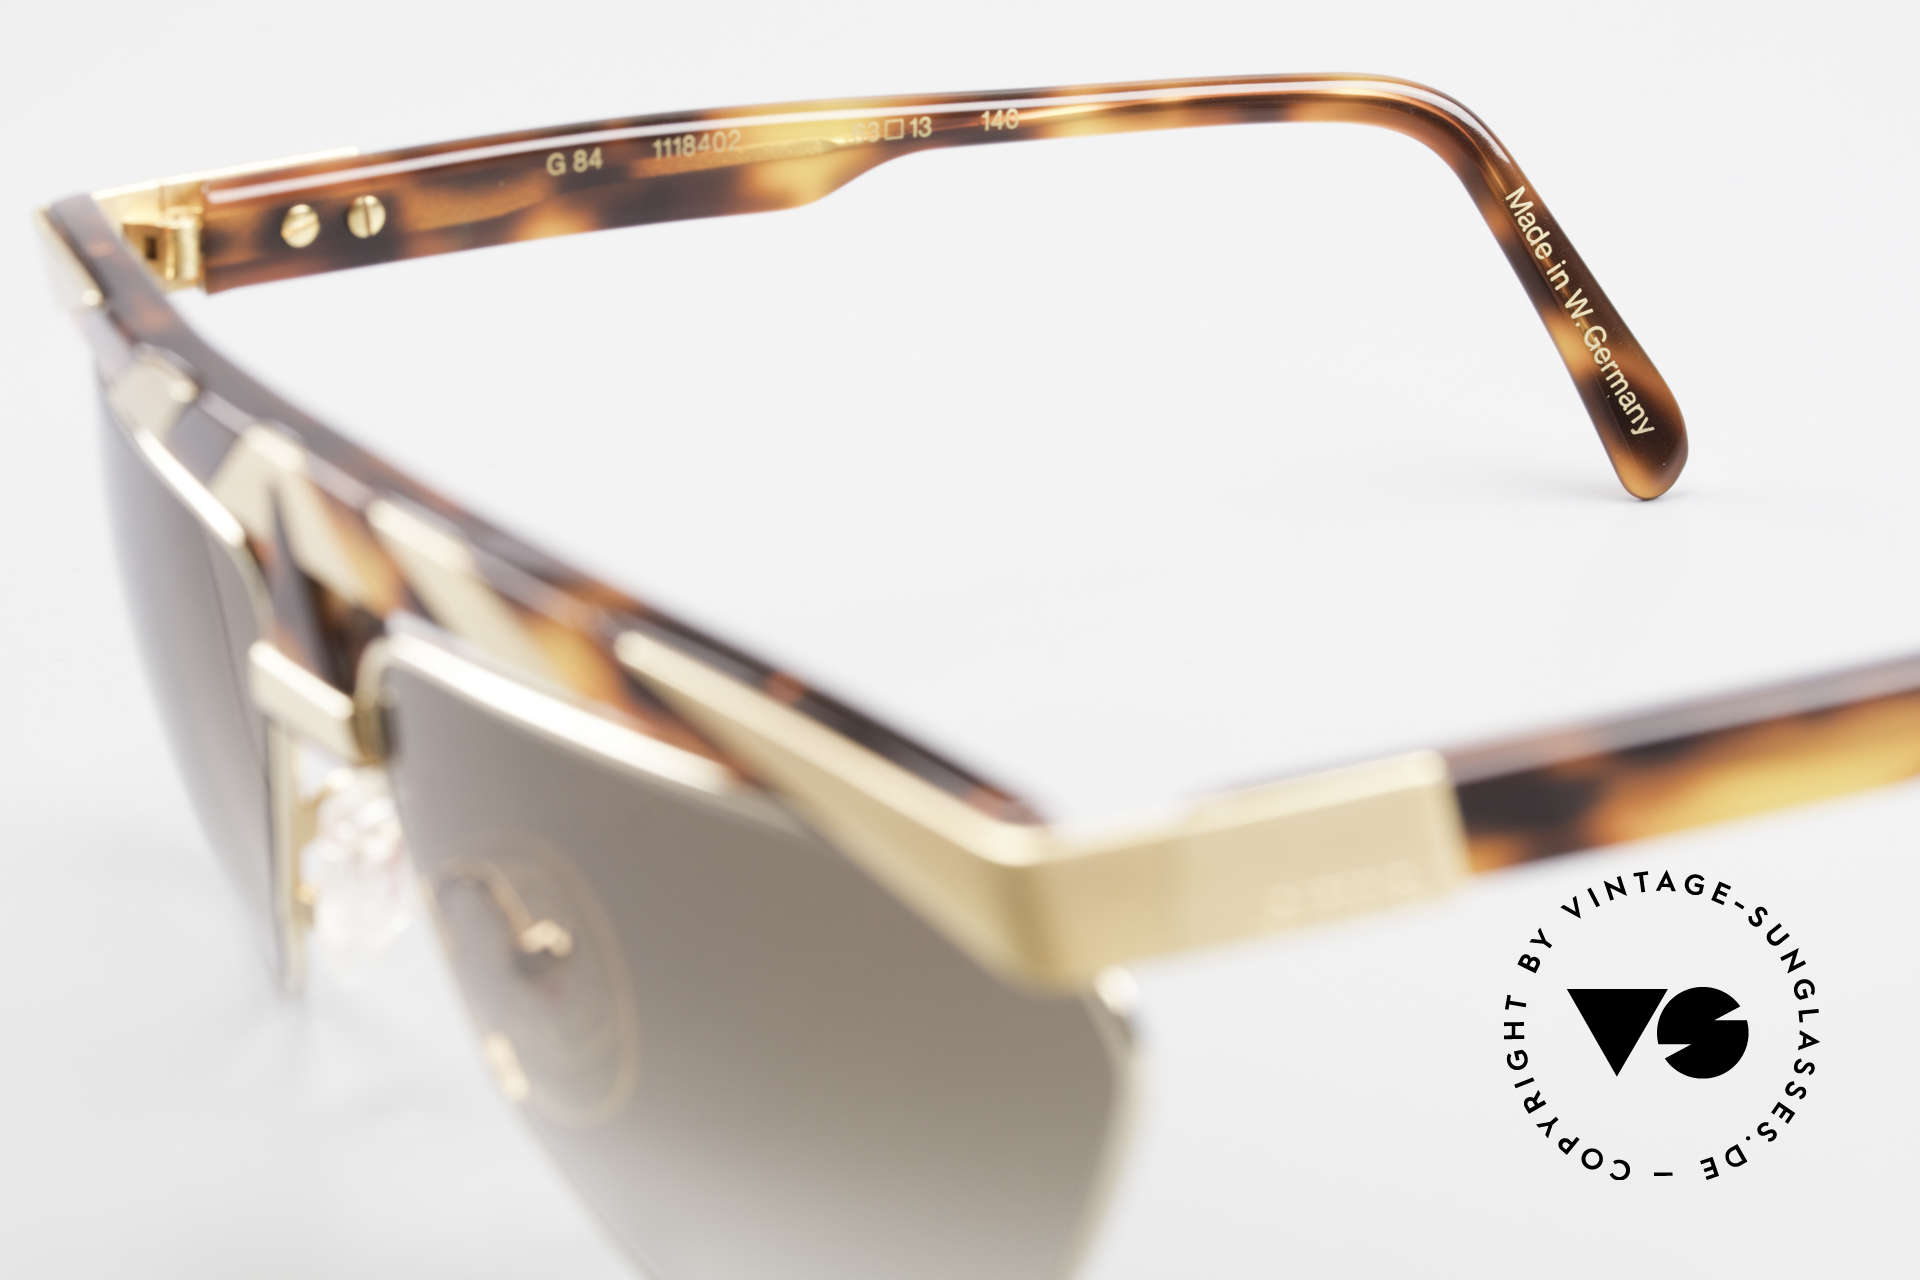 Alpina G84 80's Sunglasses Gold Plated, NO RETRO fashion; but a rare 30 years old ORIGINAL, Made for Men and Women